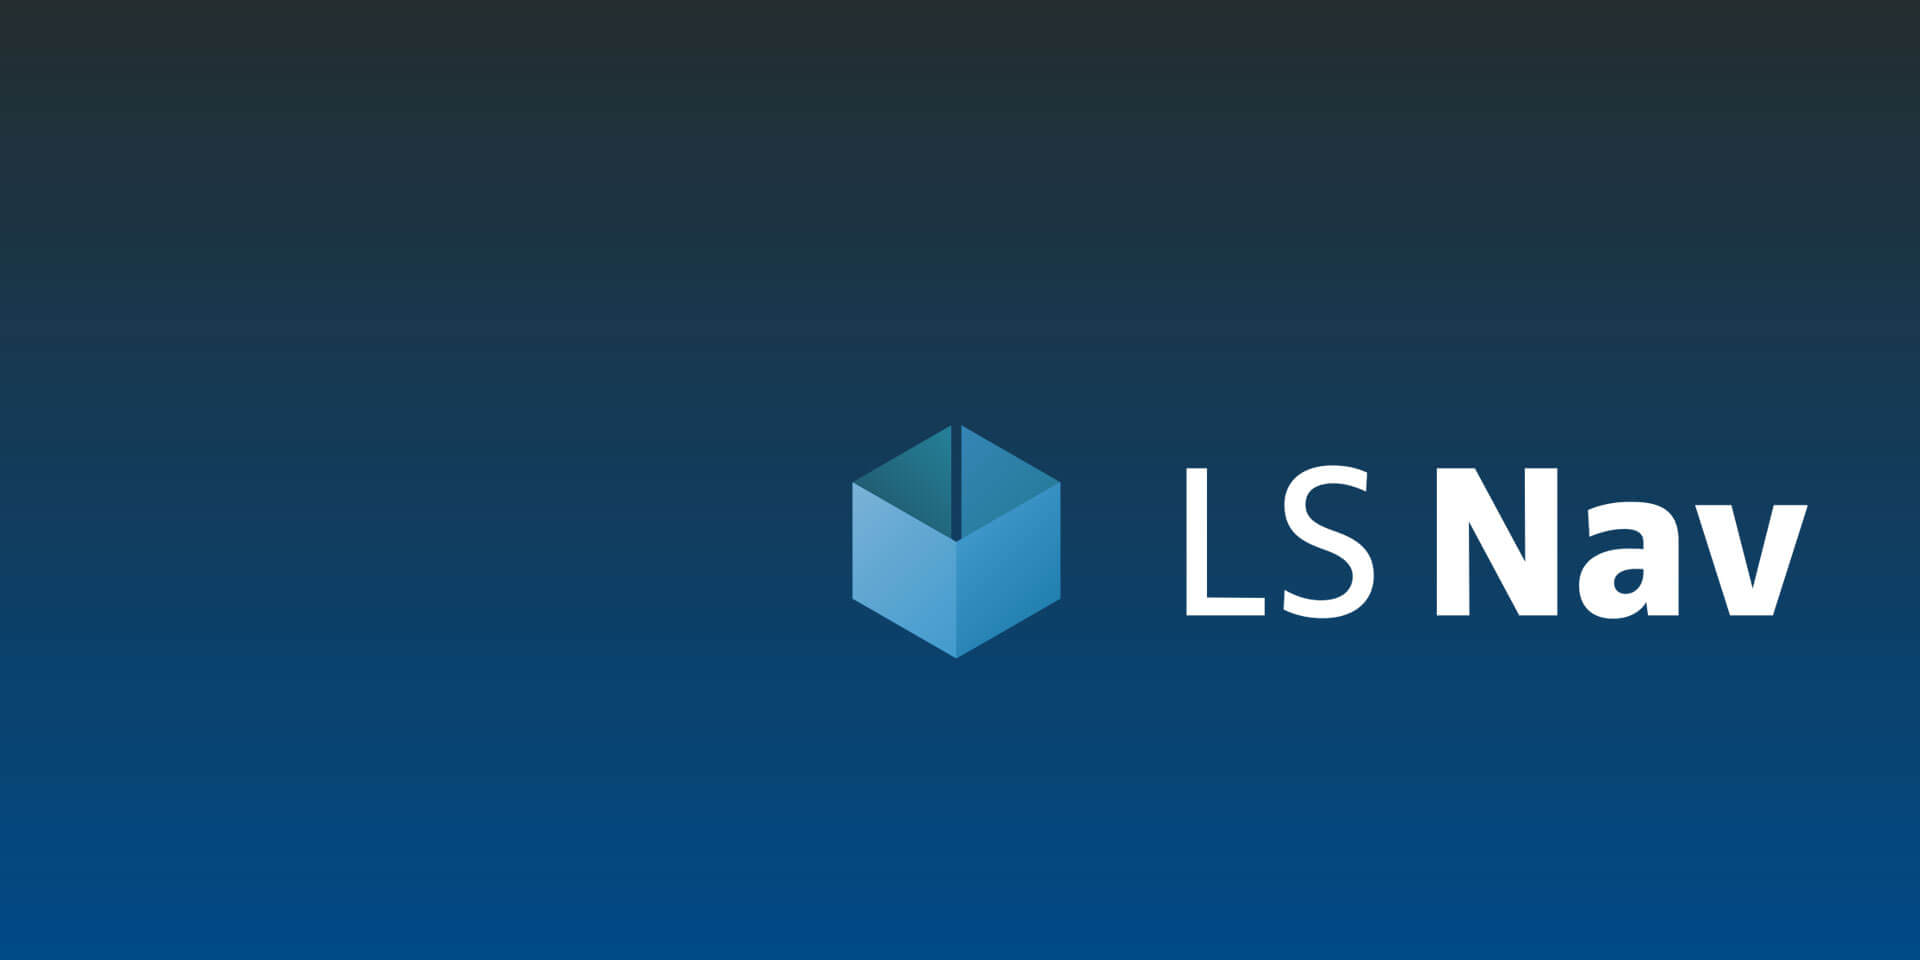 LS Nav 11.01: easier web services, extended retail budgets, configurable Kitchen Display System